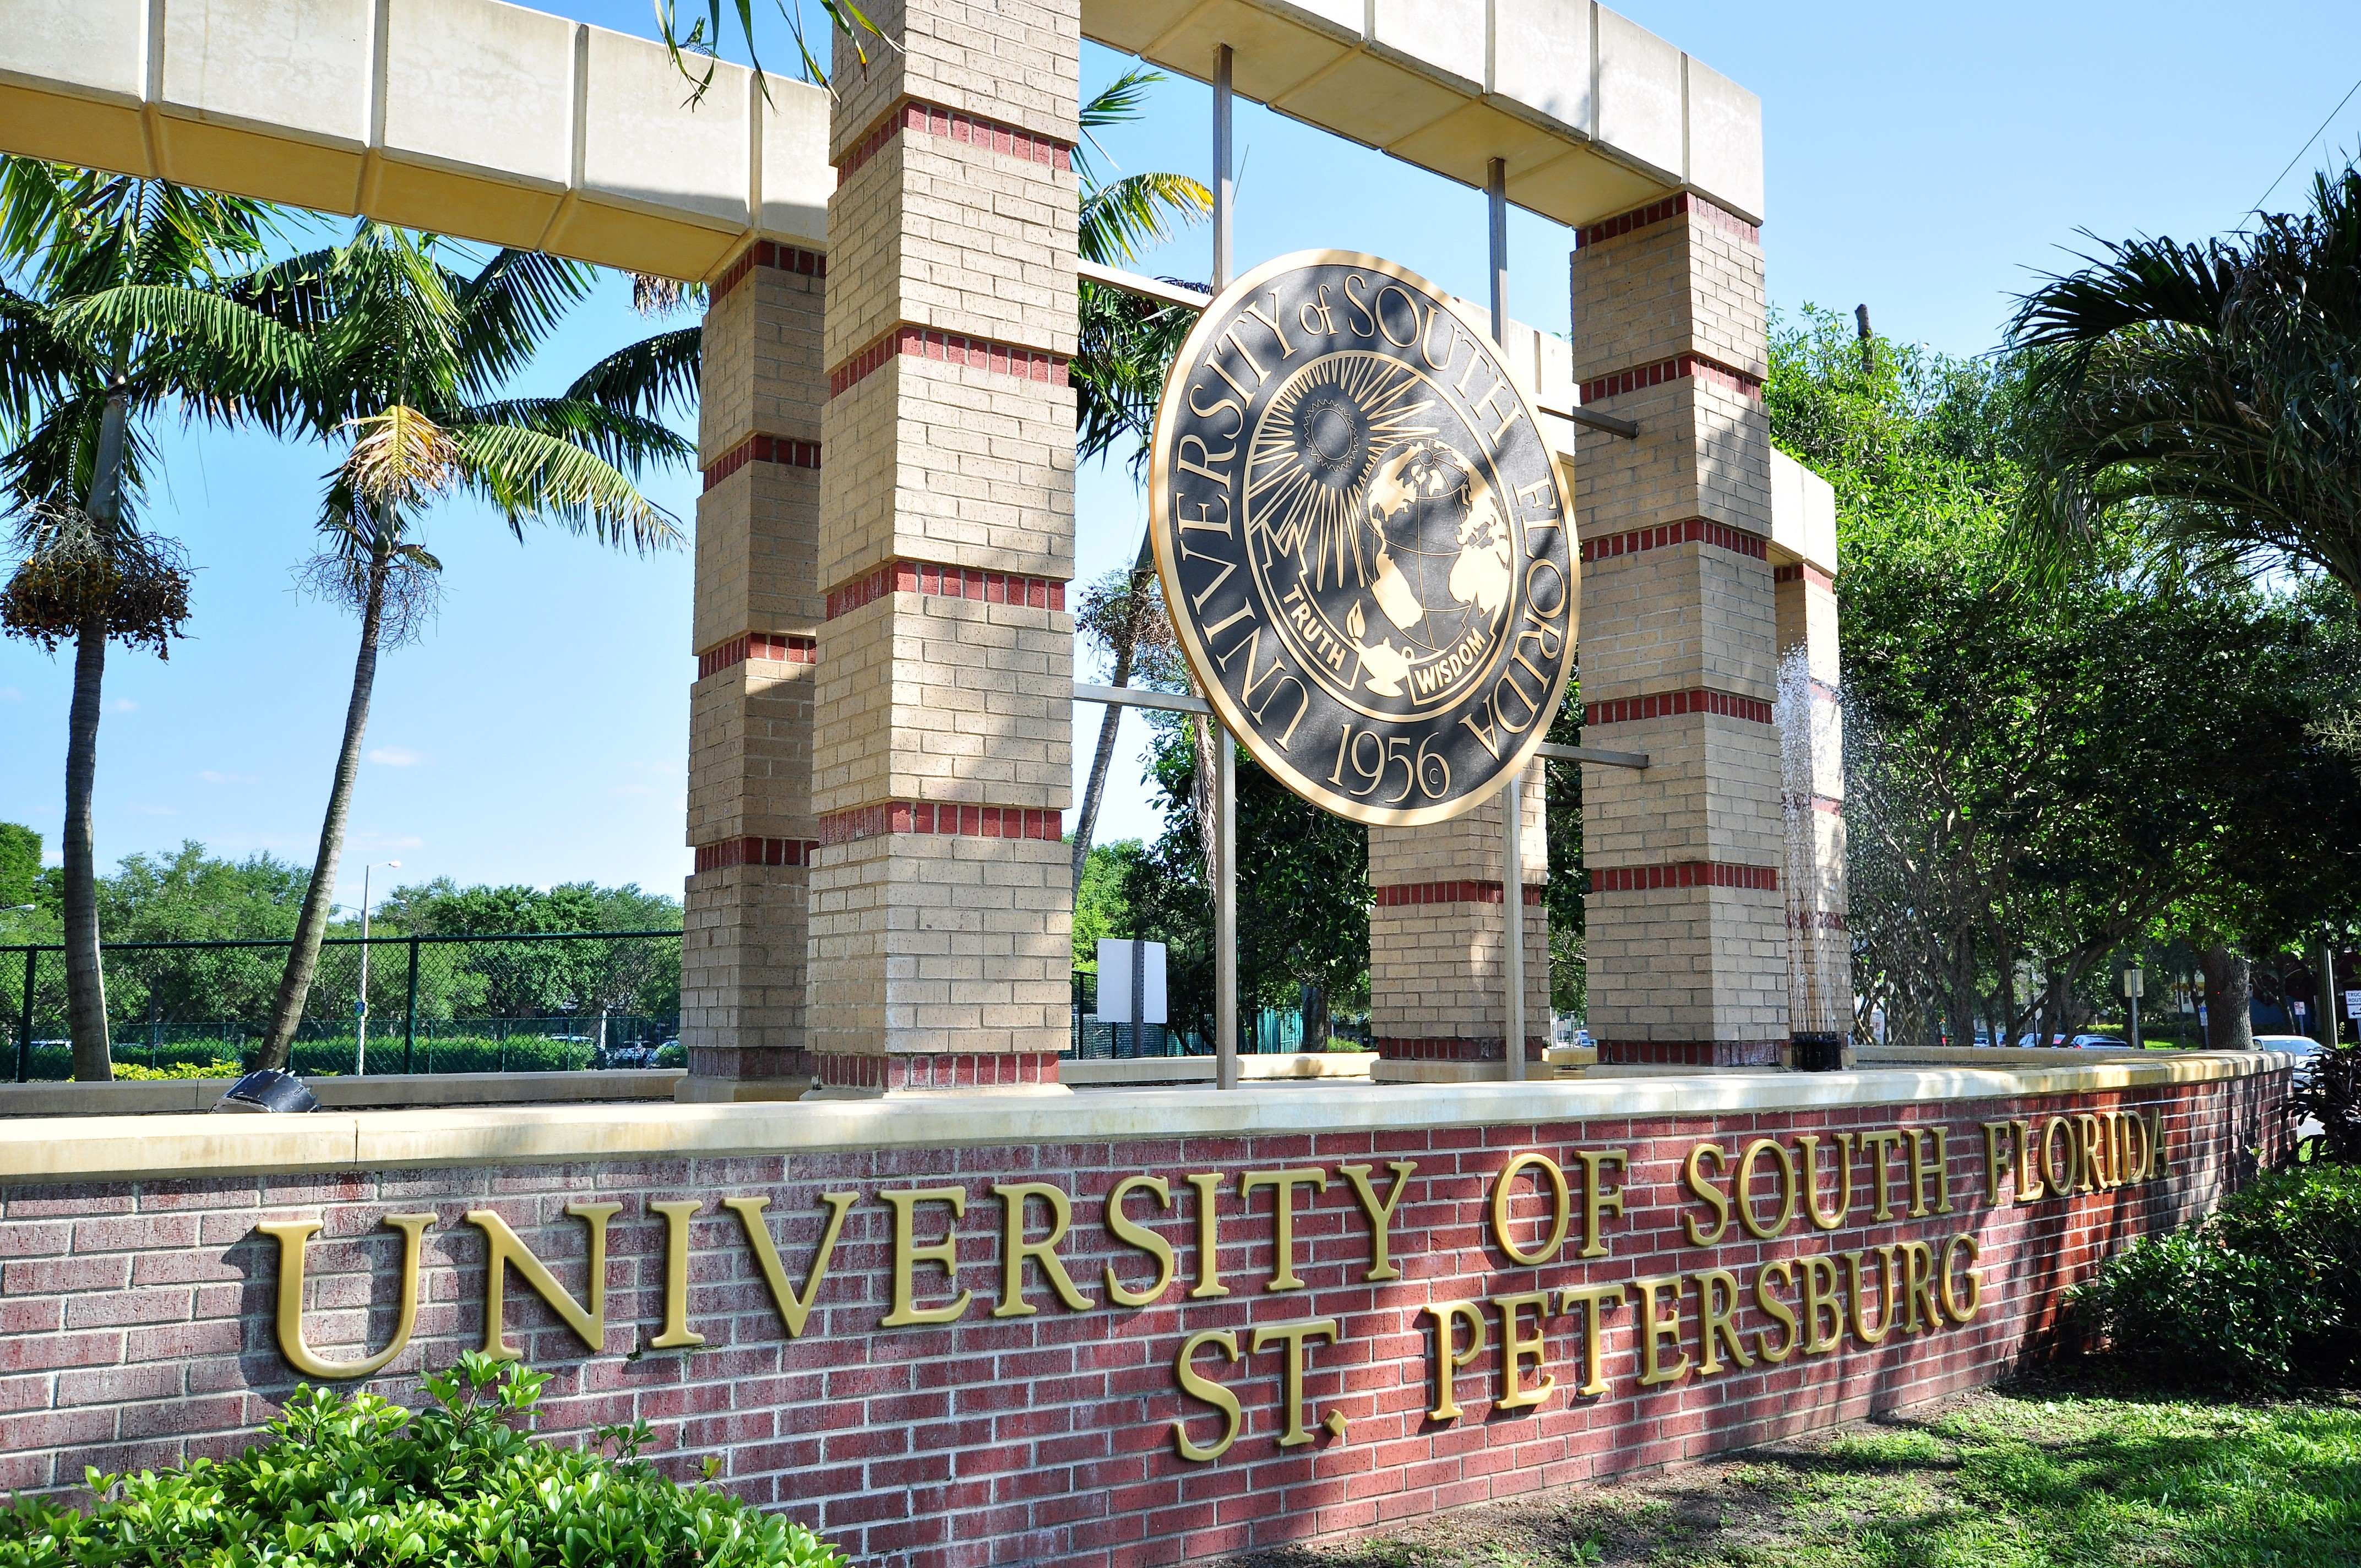 University of South Florida St Petersburg Campus